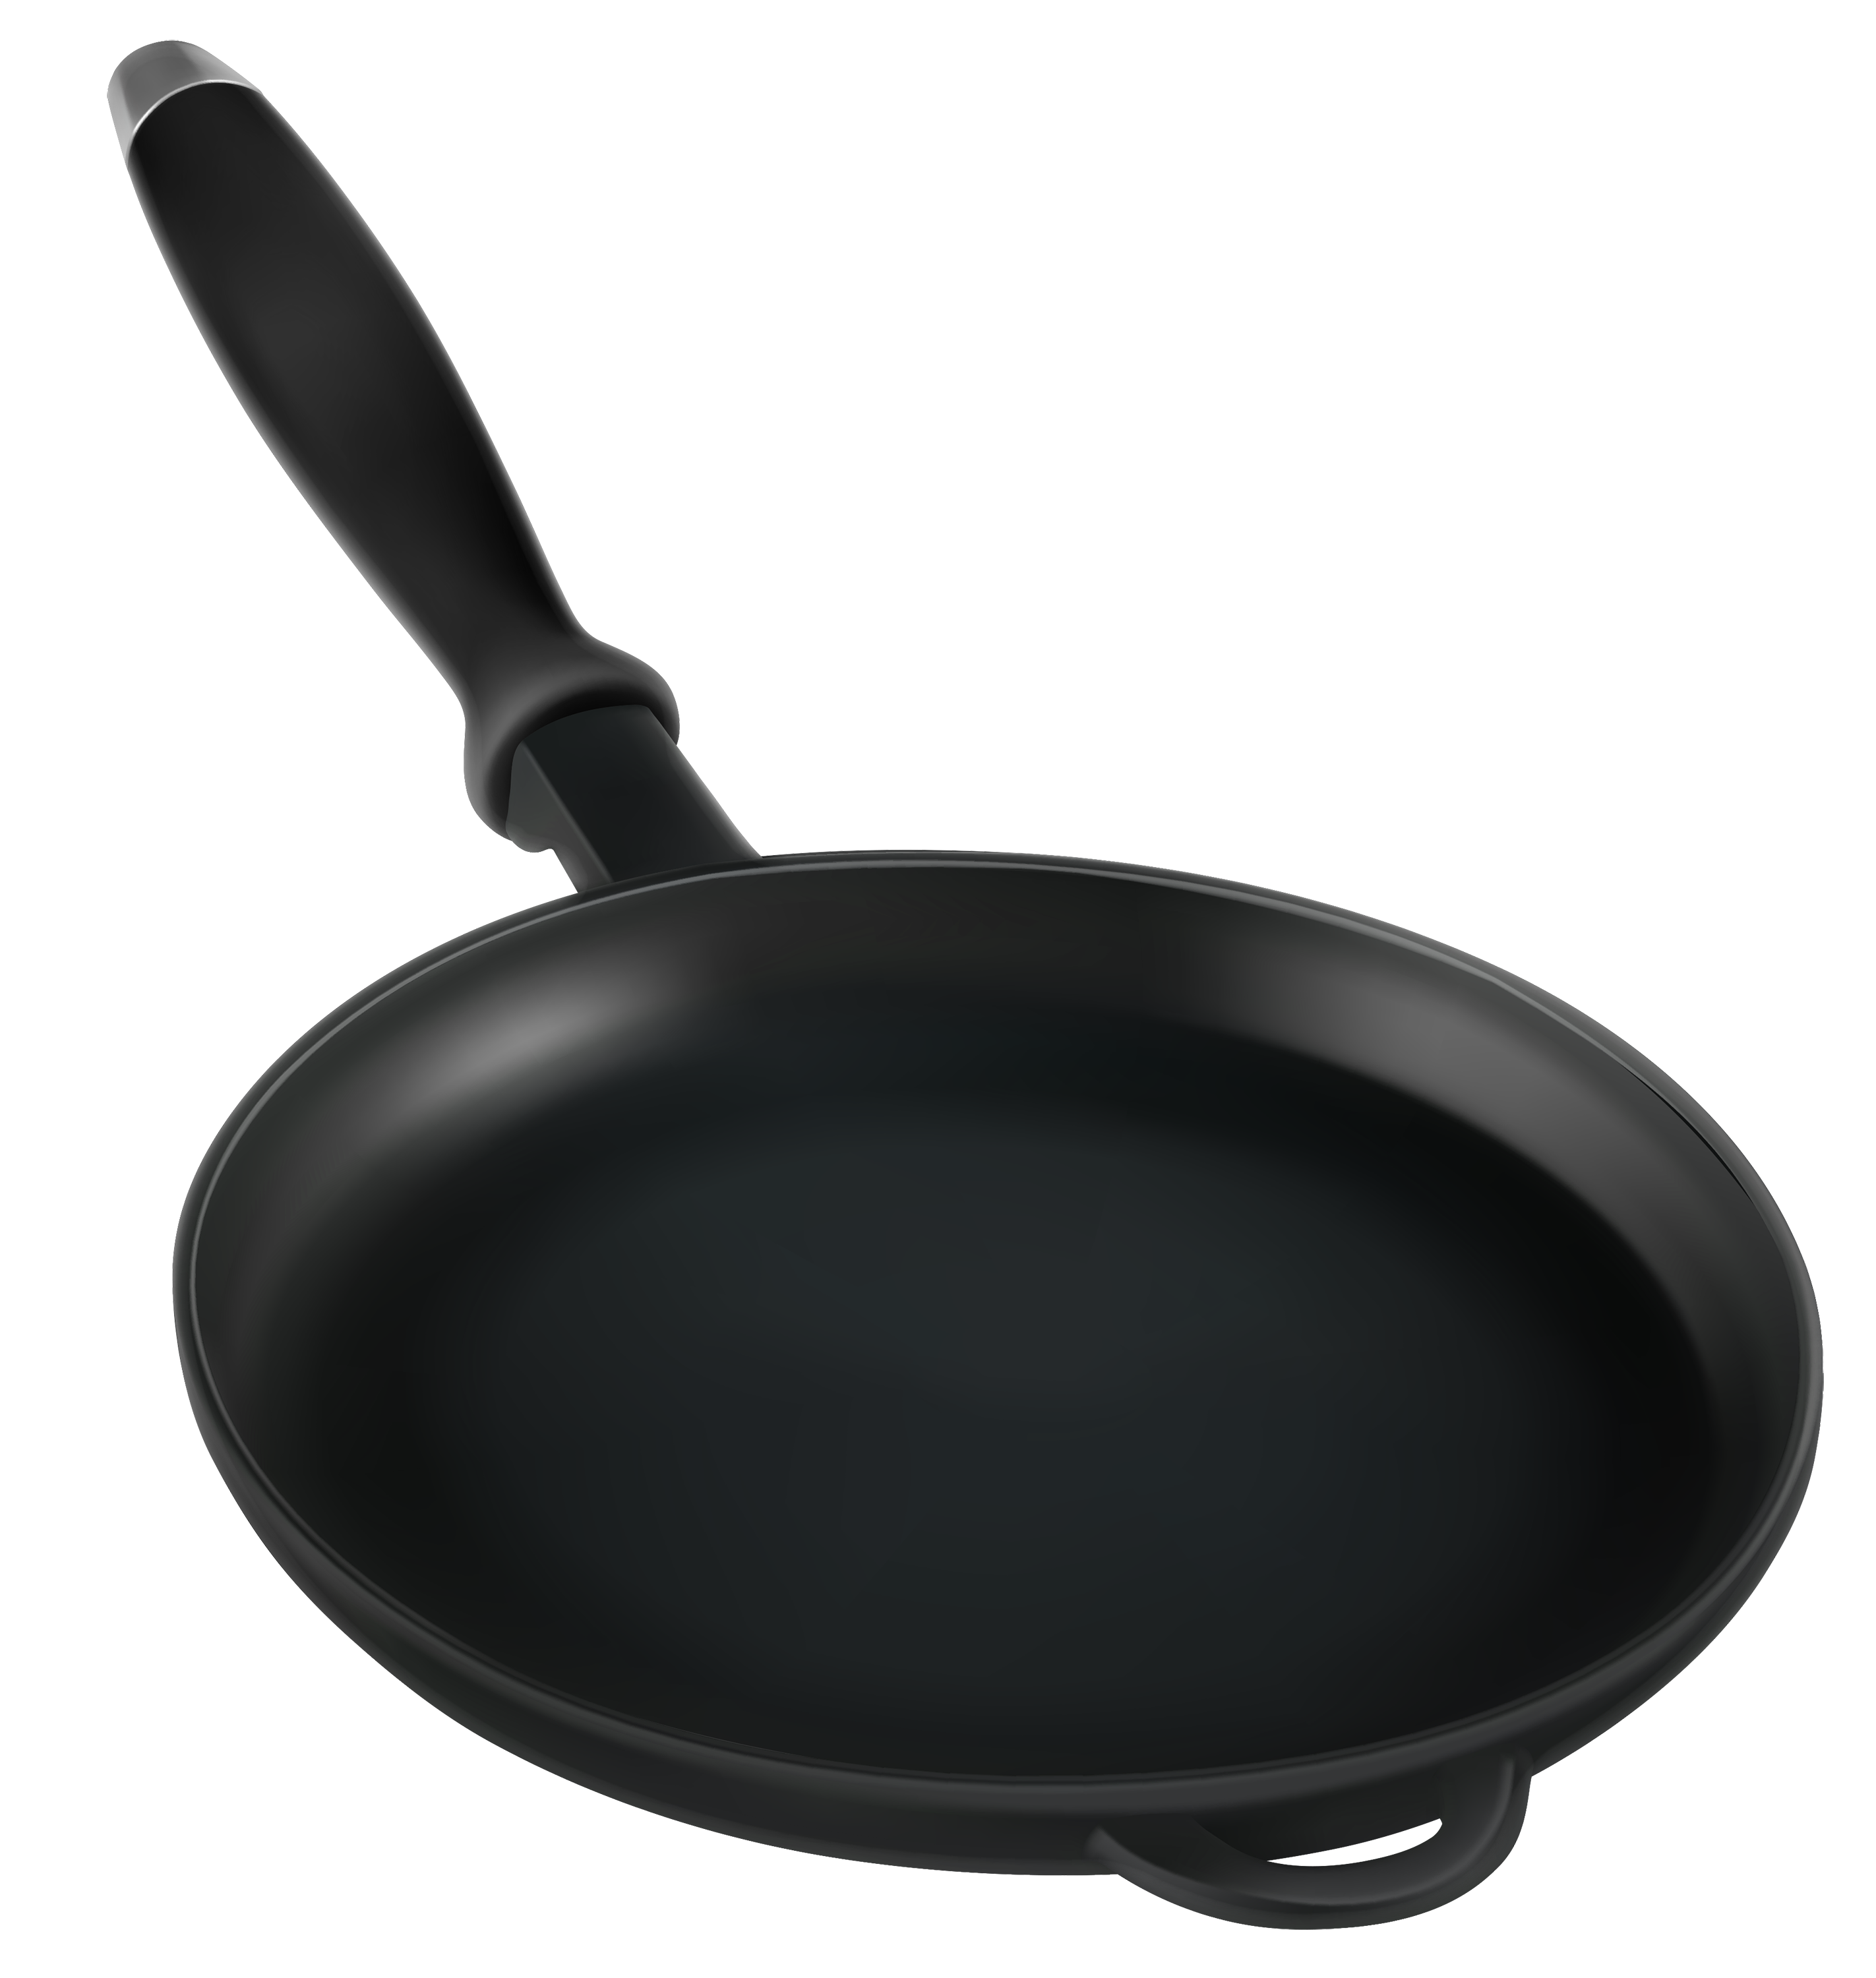 Fish in frying pan clipart graphic freeuse Black Pan PNG Clipart - Best WEB Clipart graphic freeuse